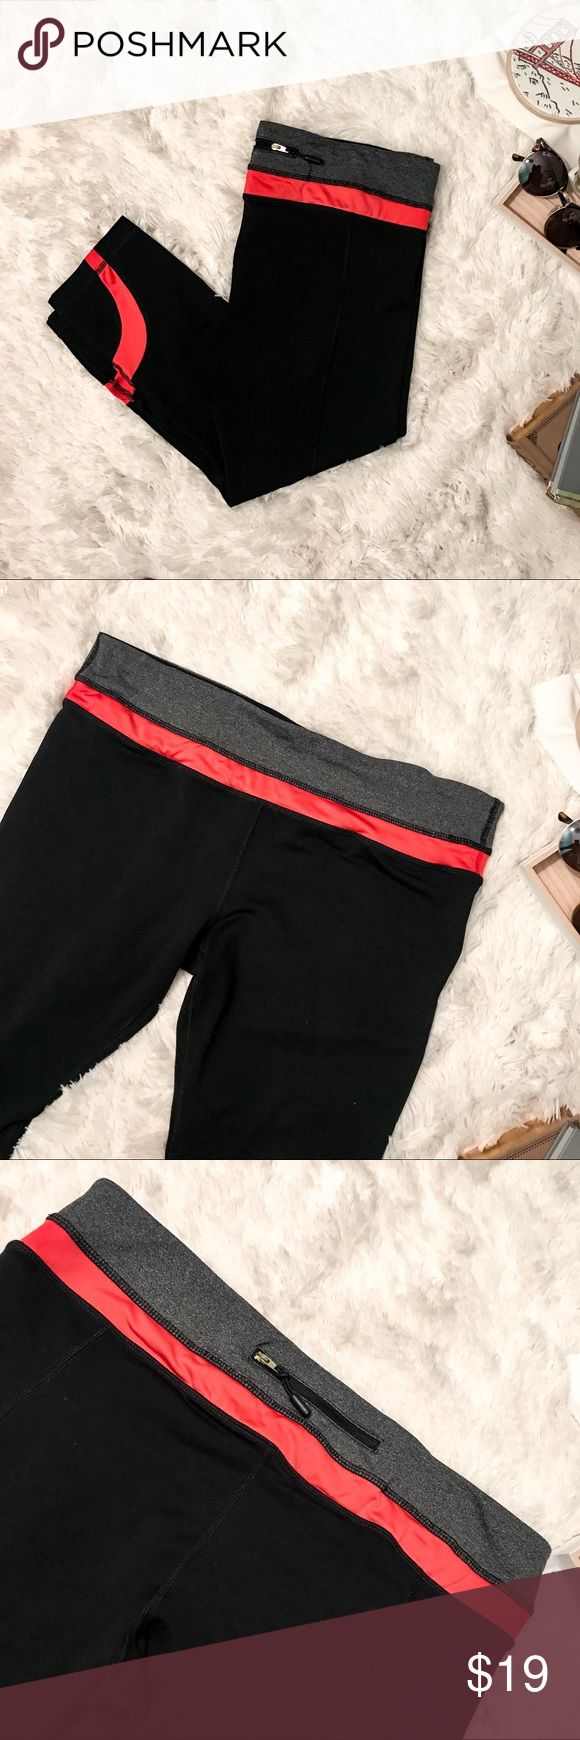 🆕 90degree by reflex black workout Capri Leggings These versatile gym capris kick high quality performance up notch.  Speciality features:  wide waistband that contours your curves & streamlines your shape small pocket to create a classic combination of fashion and function.  these yoga capri leggings have a 4-way stretch fabric which offers support & wicks away moisture & sweat for maximum comfort.  In excellent used condition  Black Capri leggings with red/orange detail From a smoke and…